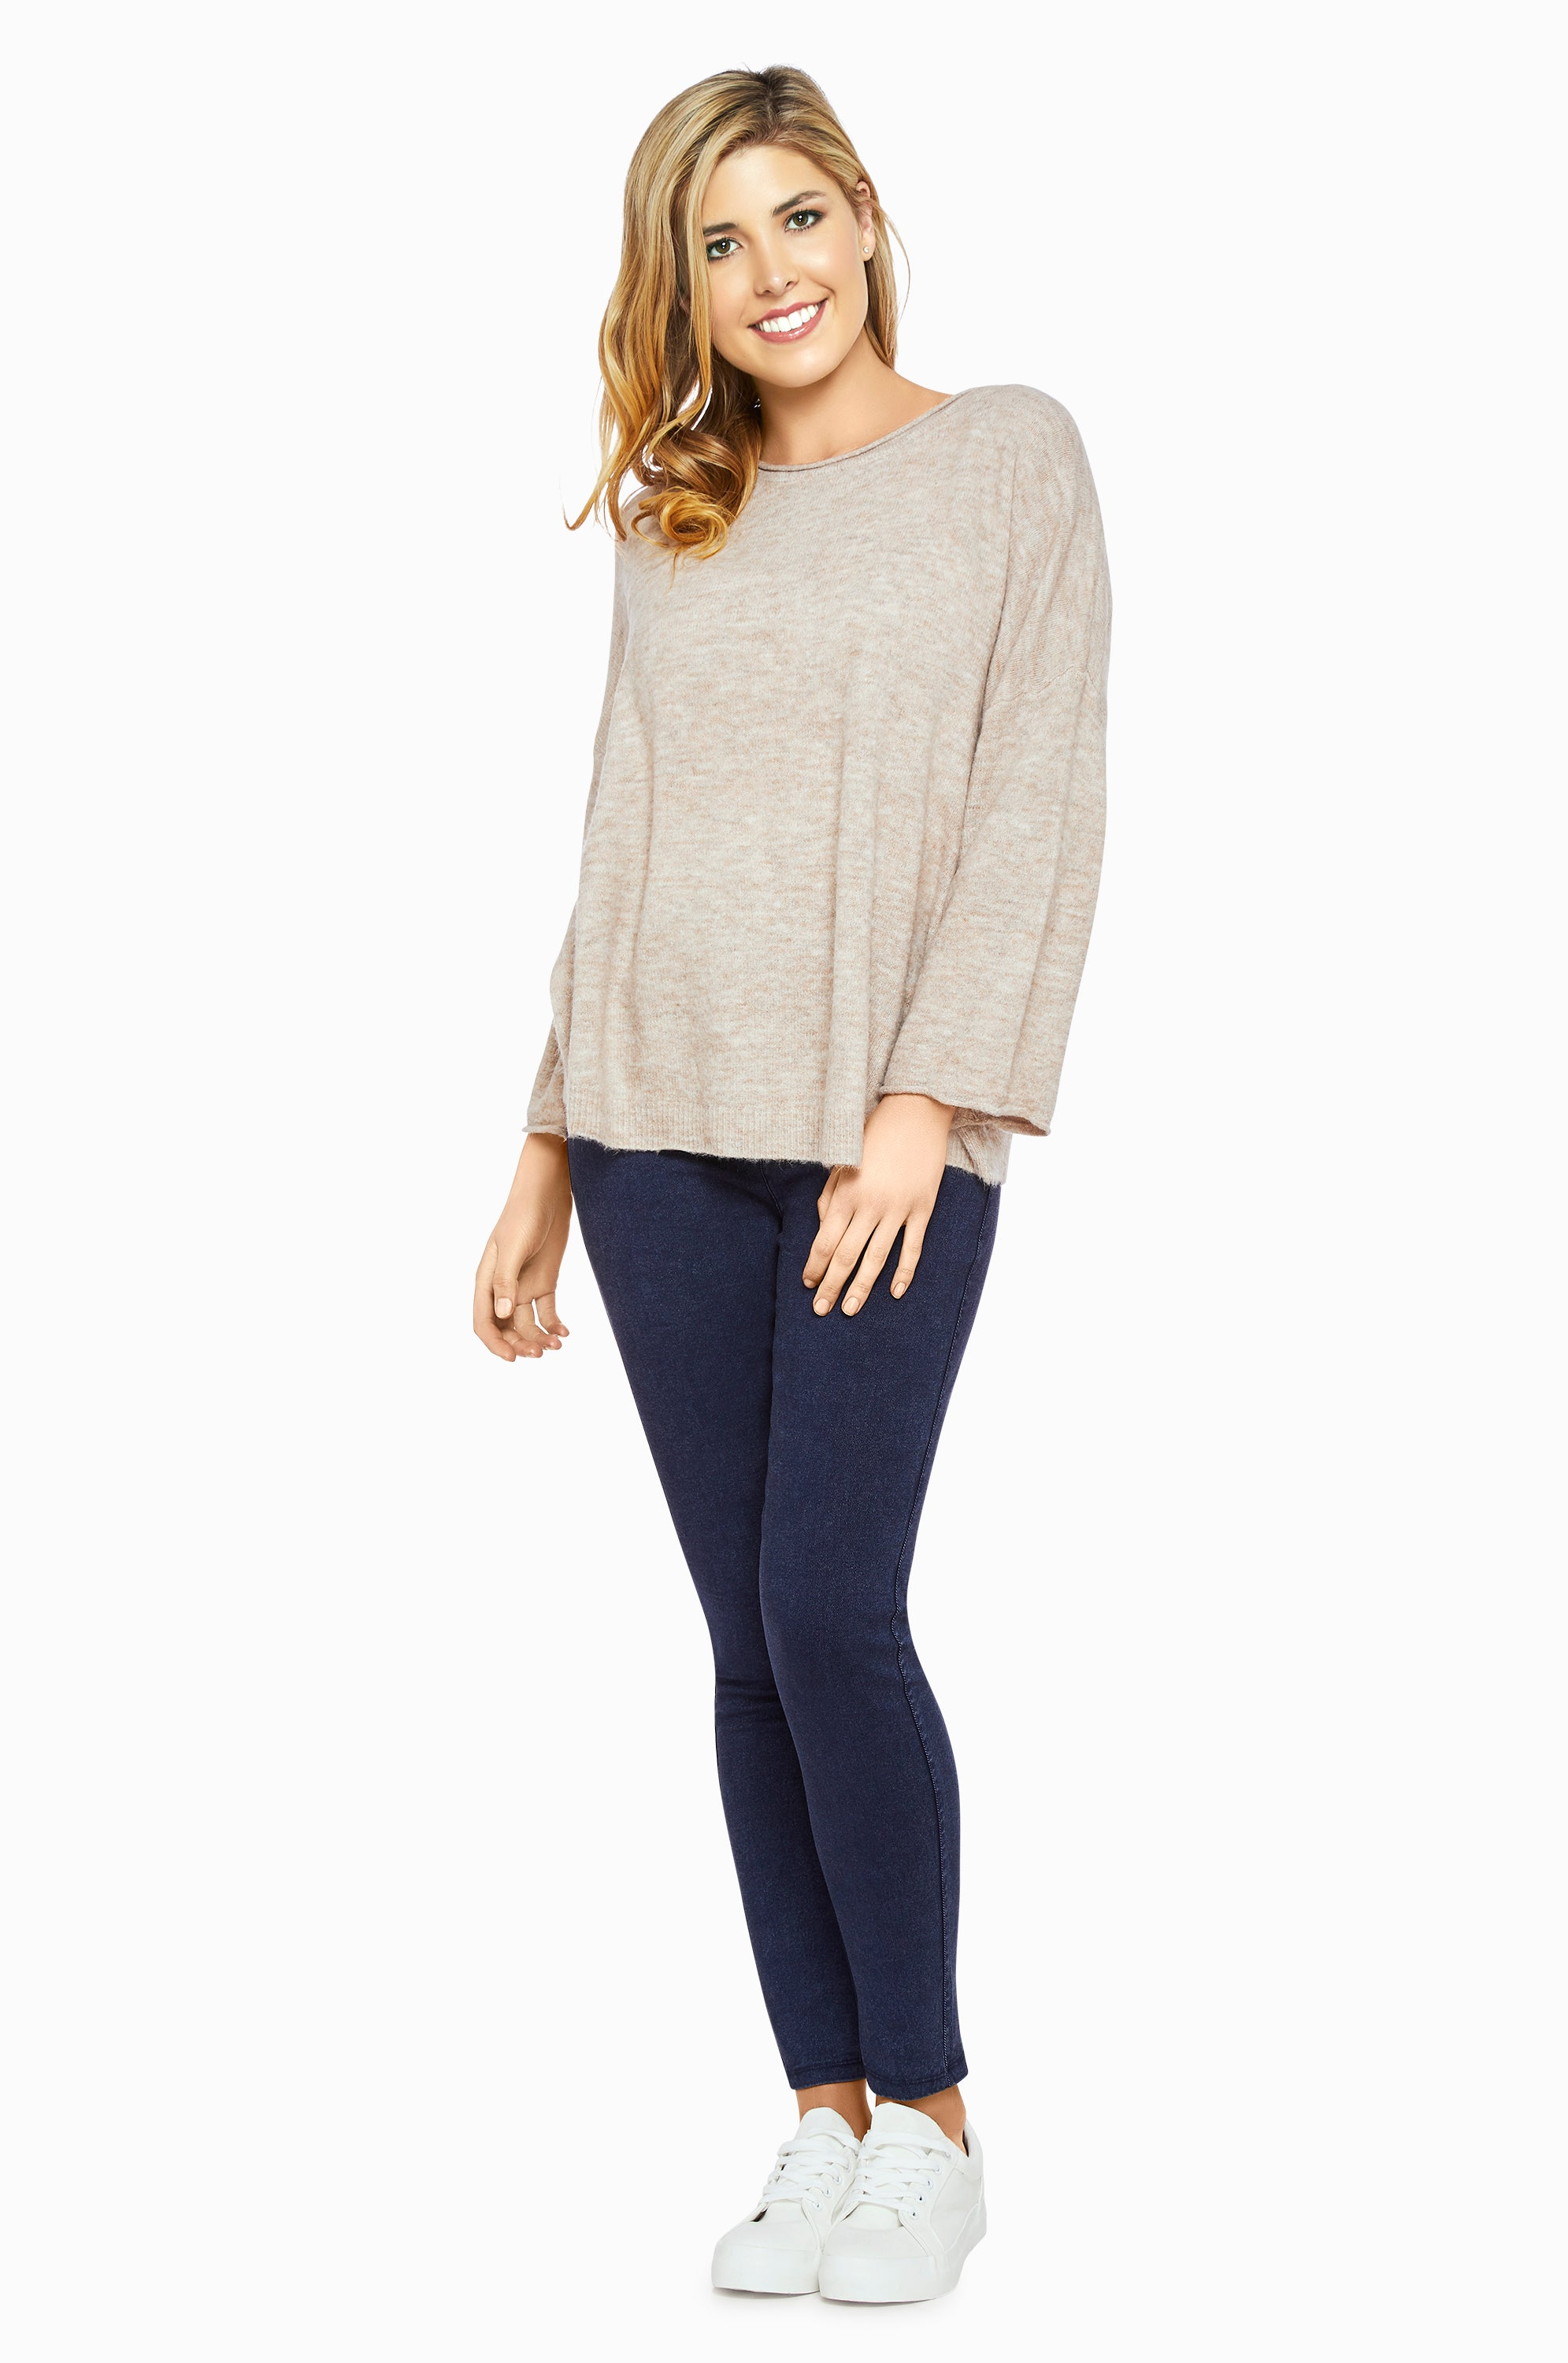 Jindy Beige Knit